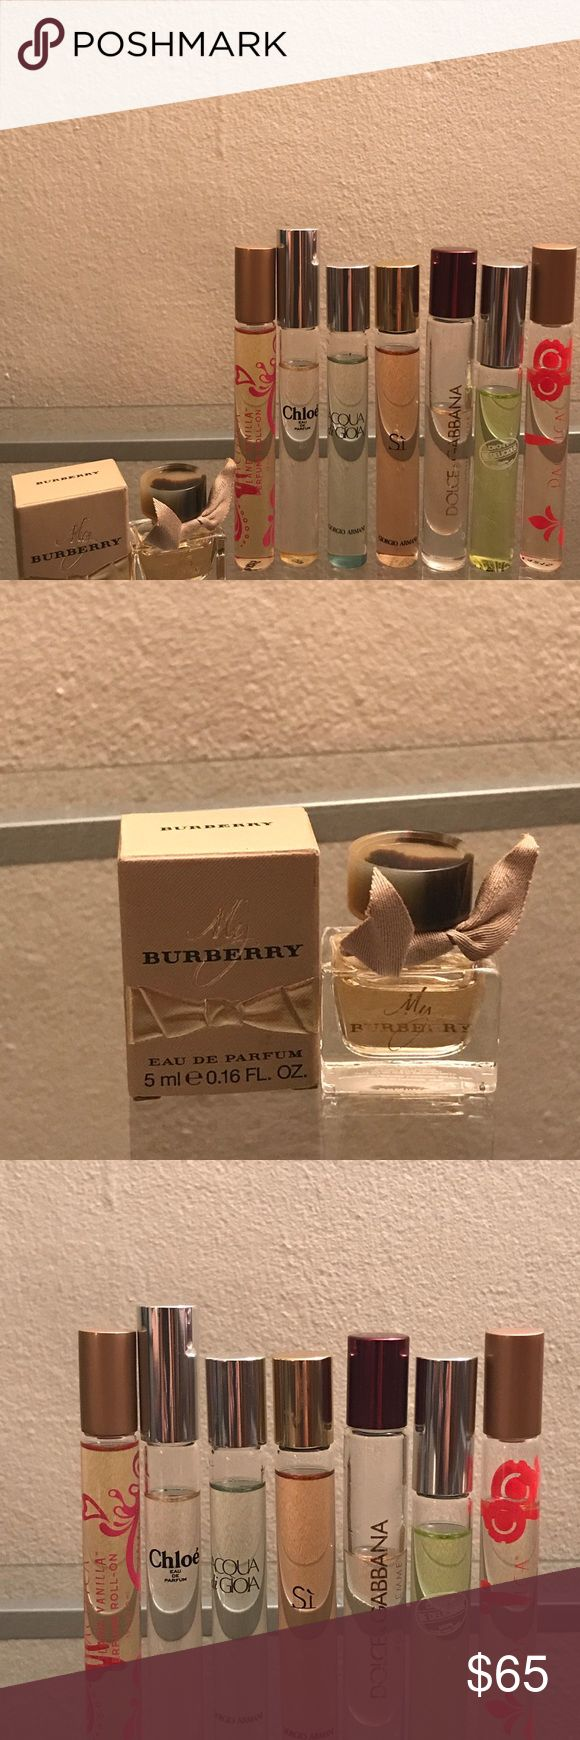 "Final$ Huge 8pc rollerball perfume lot! Huge 8pc perfume lot! DKNY ""Be Delicious"" .34oz rollerball 90%left, Burberry ""My Burberry .16oz perfume new, Pacifica . 33oz Island Vanilla"" roll on 98% left, Giorgio Armani .34oz Si"" roll on 95% left, Chloé ""Chloe"" roll on 95% left, Giorgio Armani "" Acquaint di Gioia .34 oz roll on 95% left, Pacifica ""Indian Coconut Nectar"" .33oz 85%left, Dolce & Gabana ""Pour Femme"" .20oz rollerball 50%left Other"